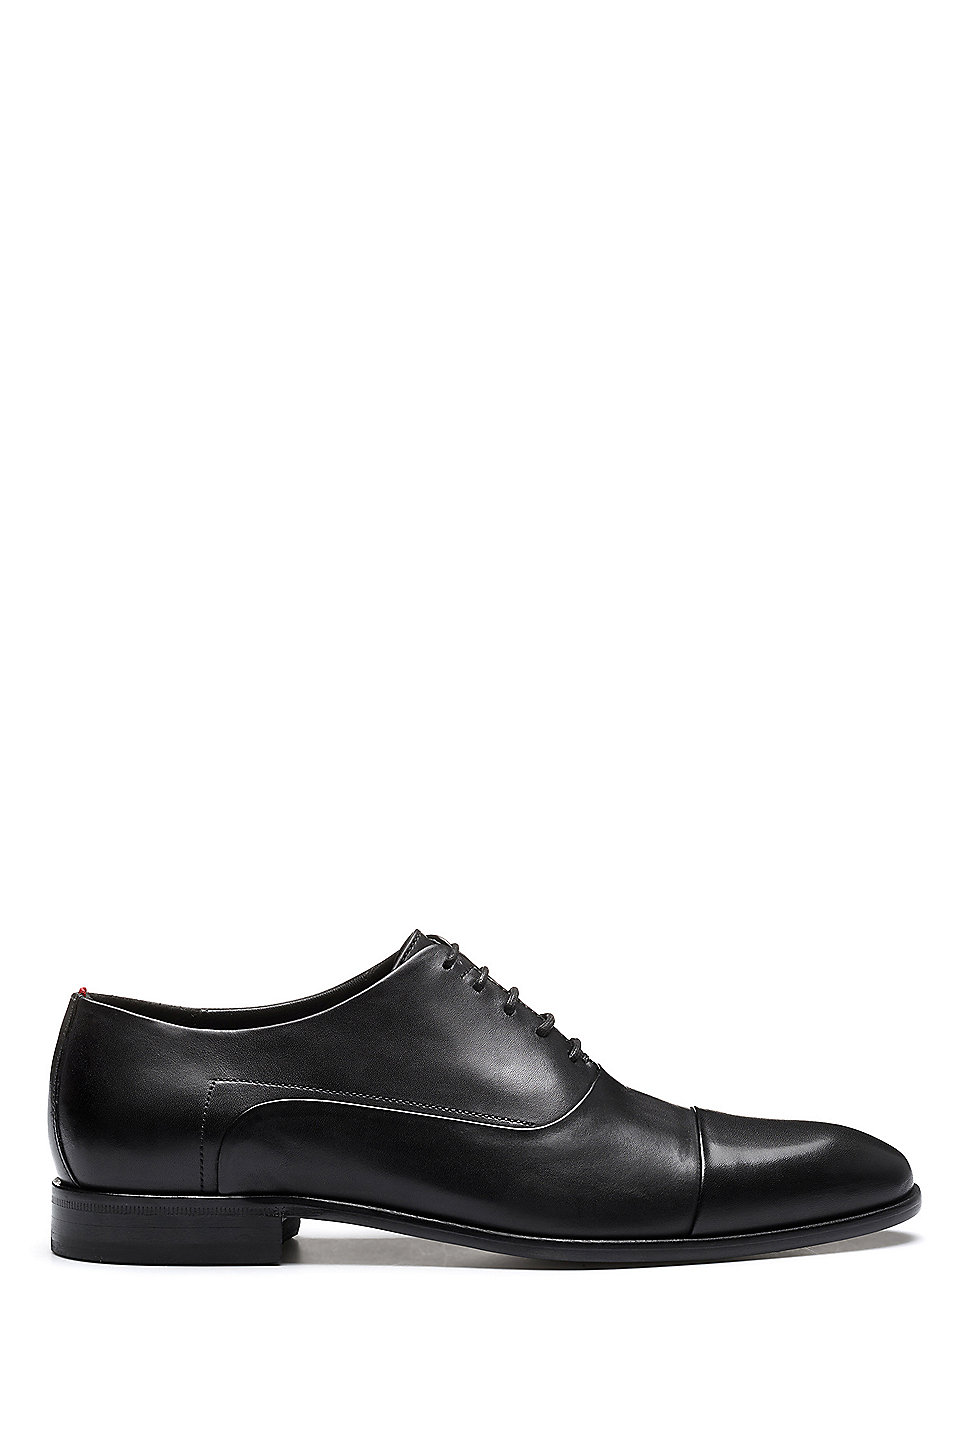 Mens Appeal_oxfr_ltct Oxfords, Black HUGO BOSS